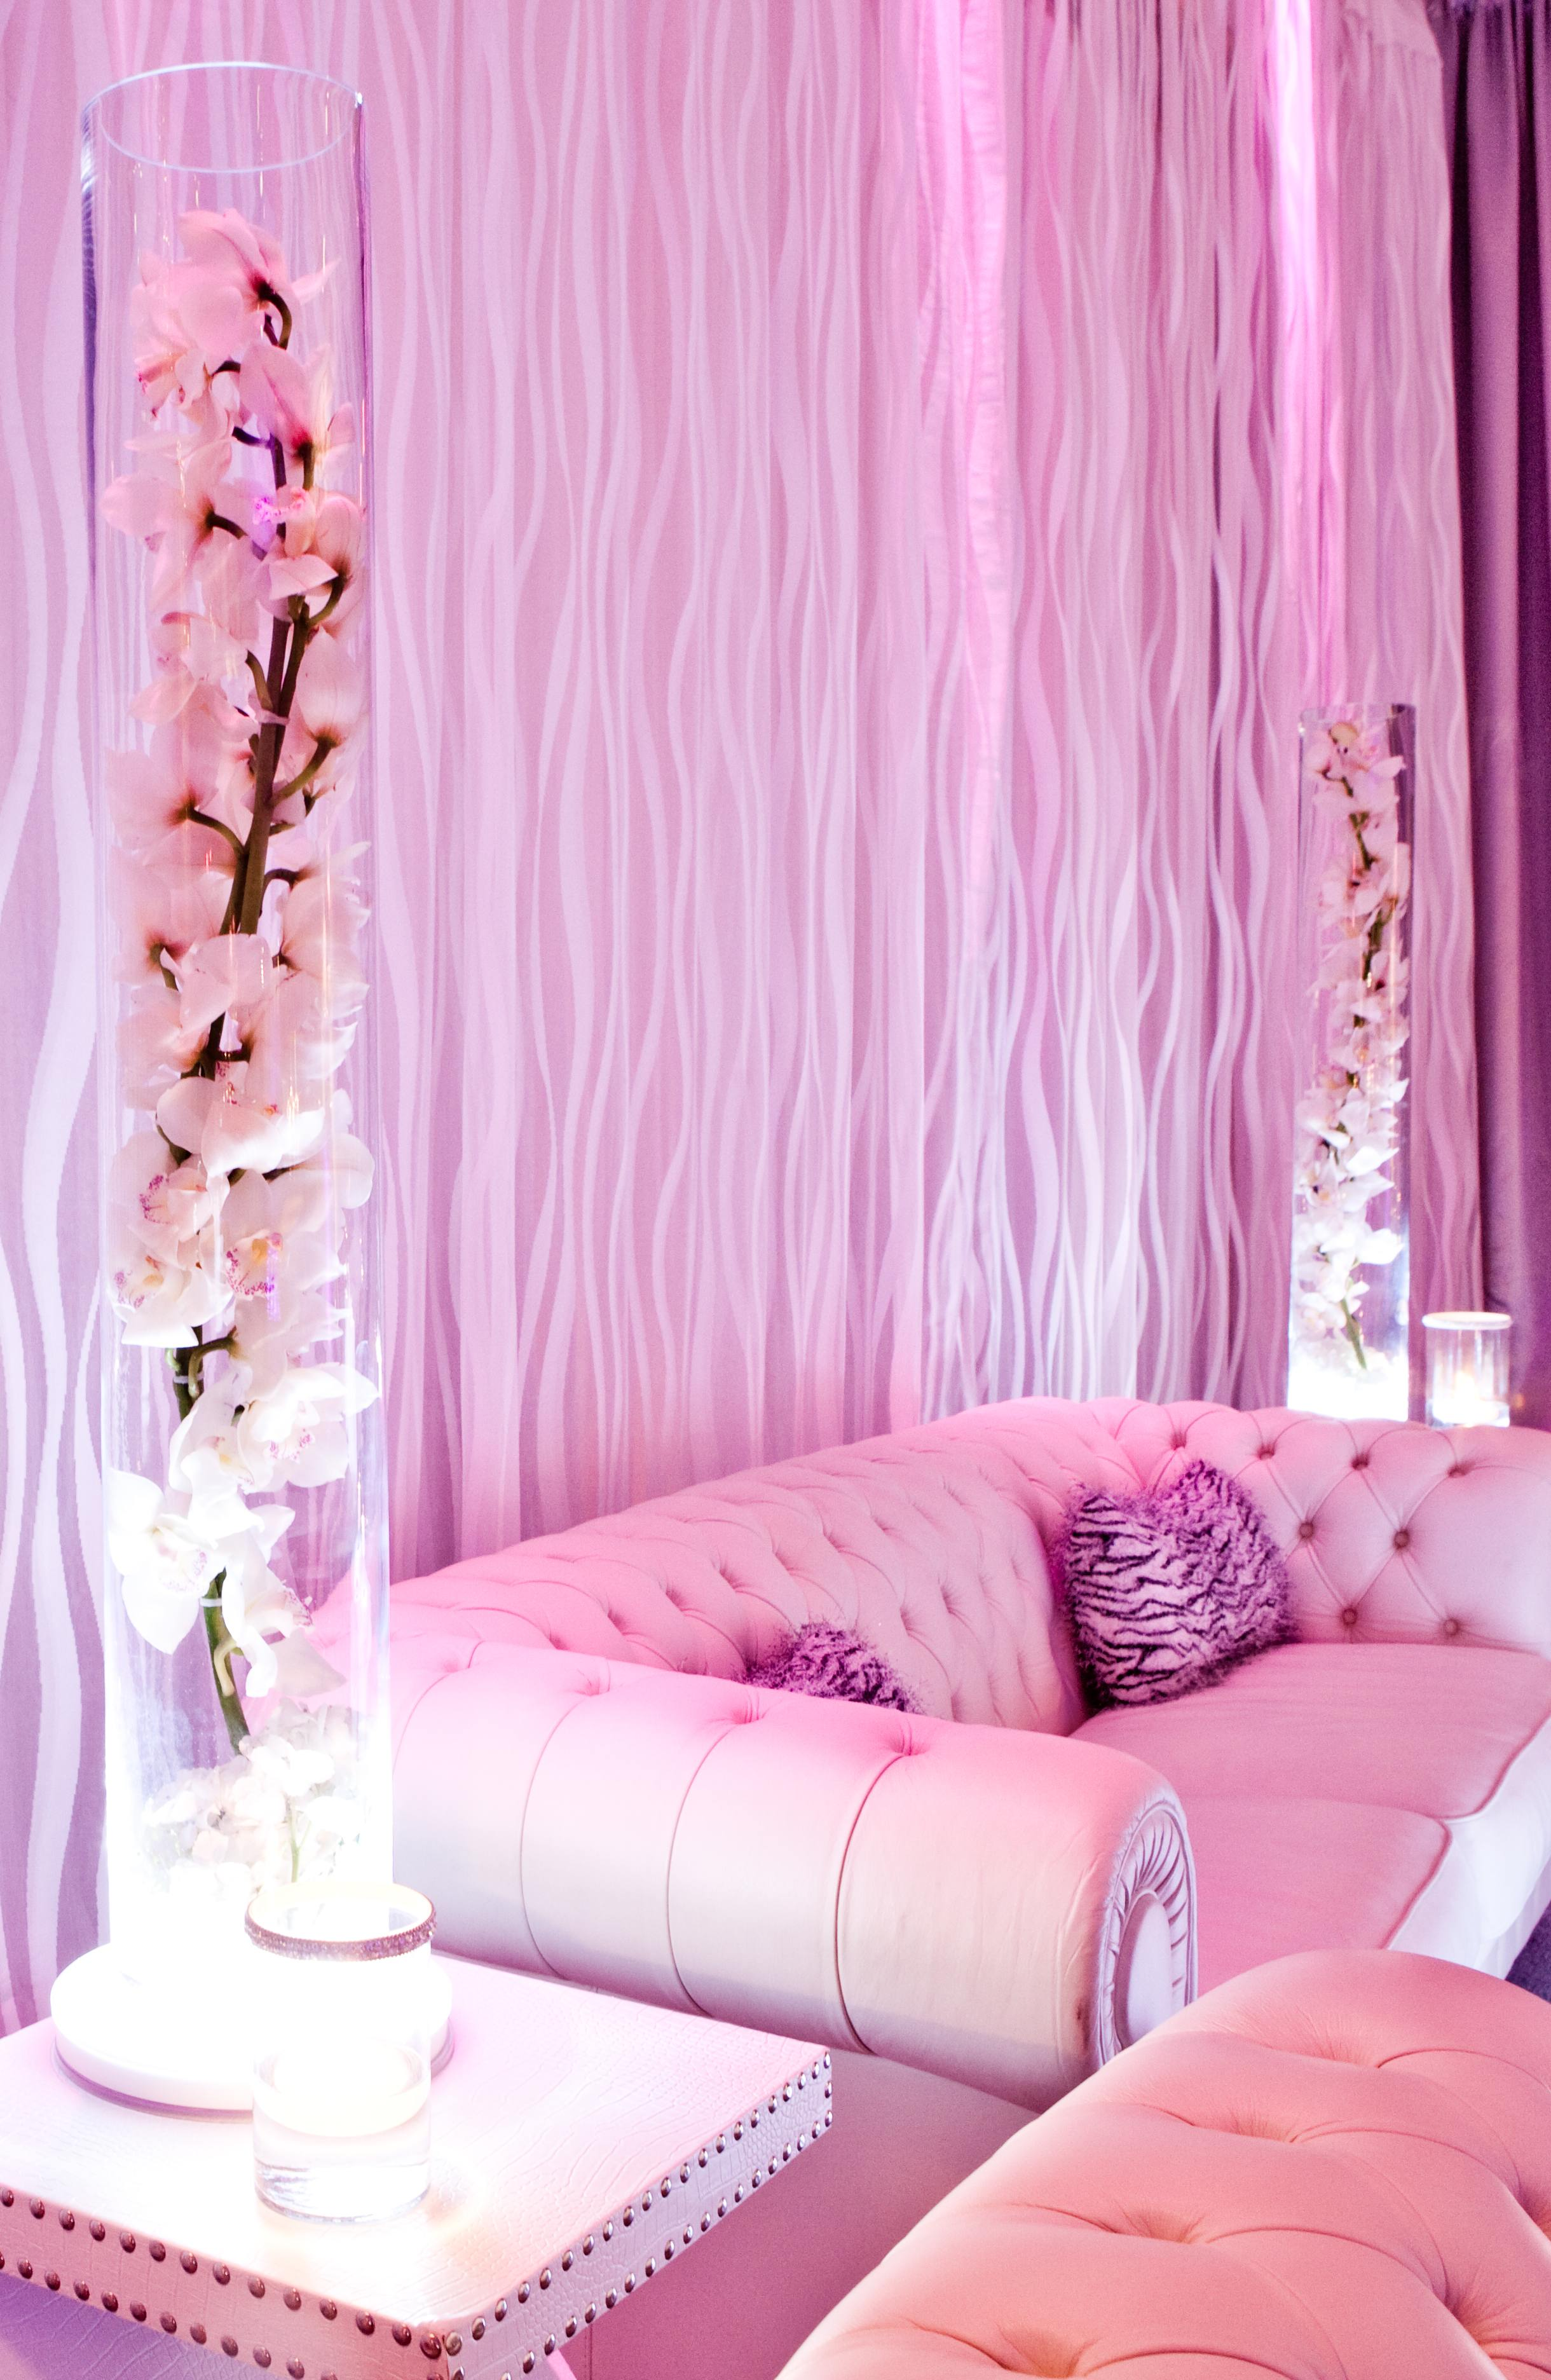 Pink lighting on tufted after party decorations